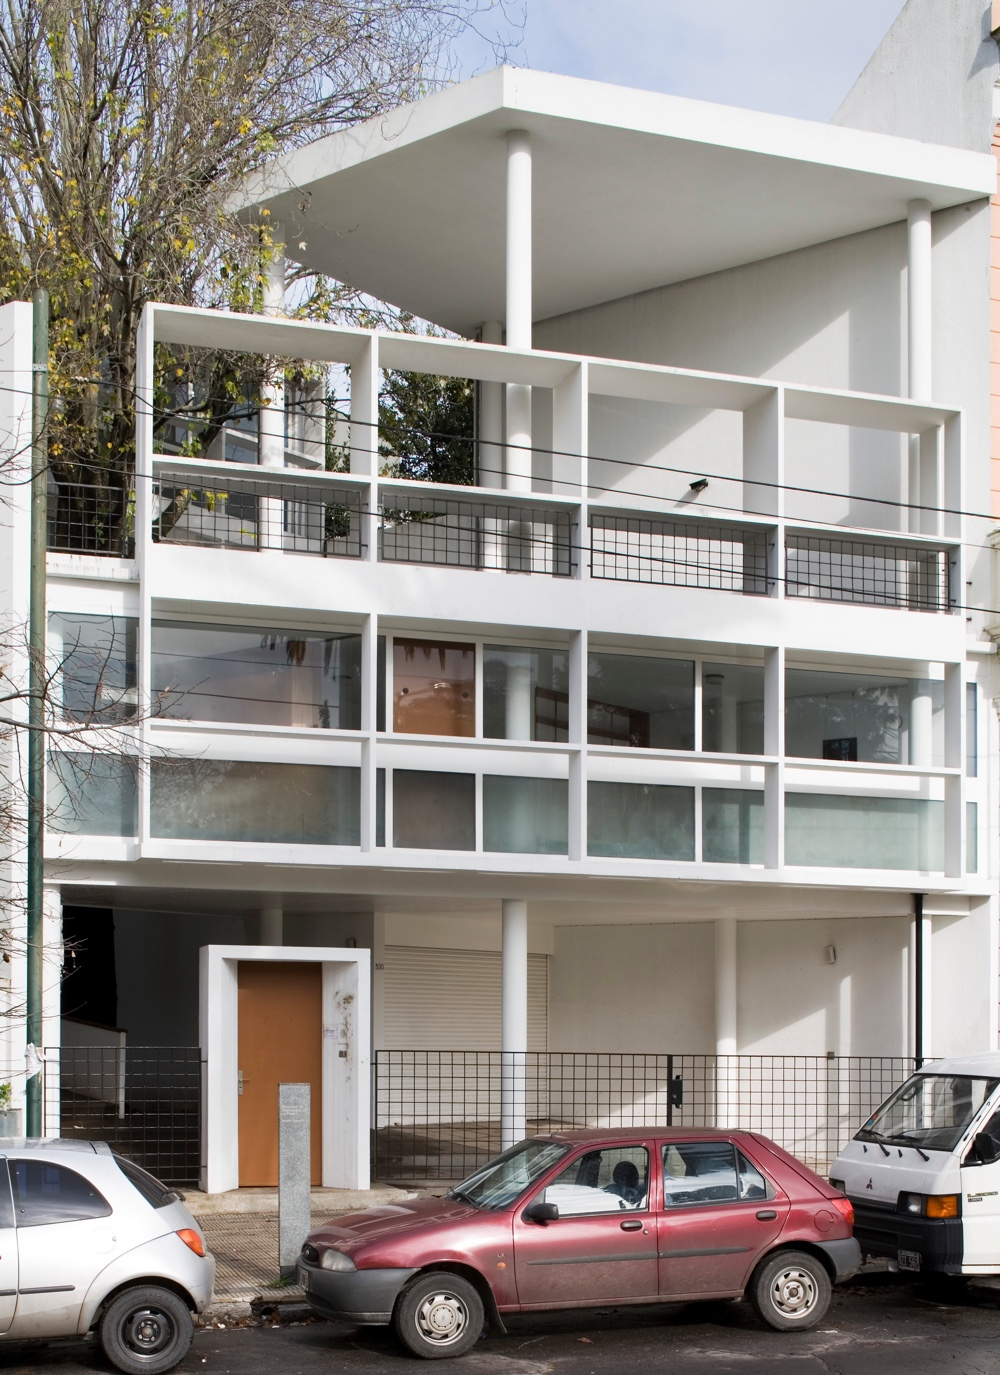 17 le corbusier buildings added to unesco world heritage list - Maison argentine ...